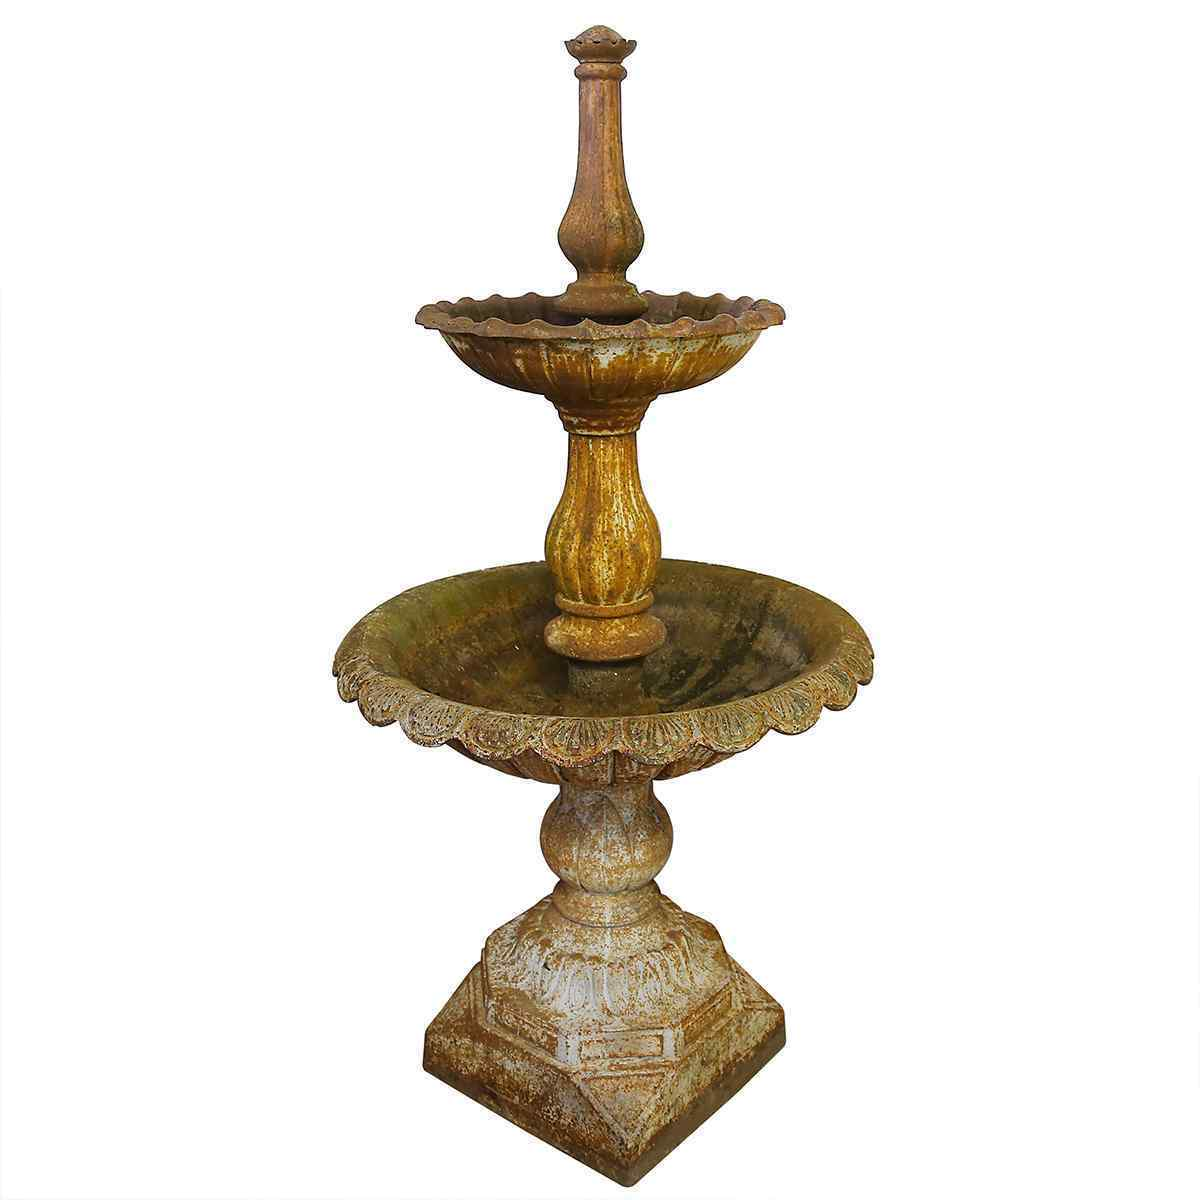 A Medici Fountain 1940